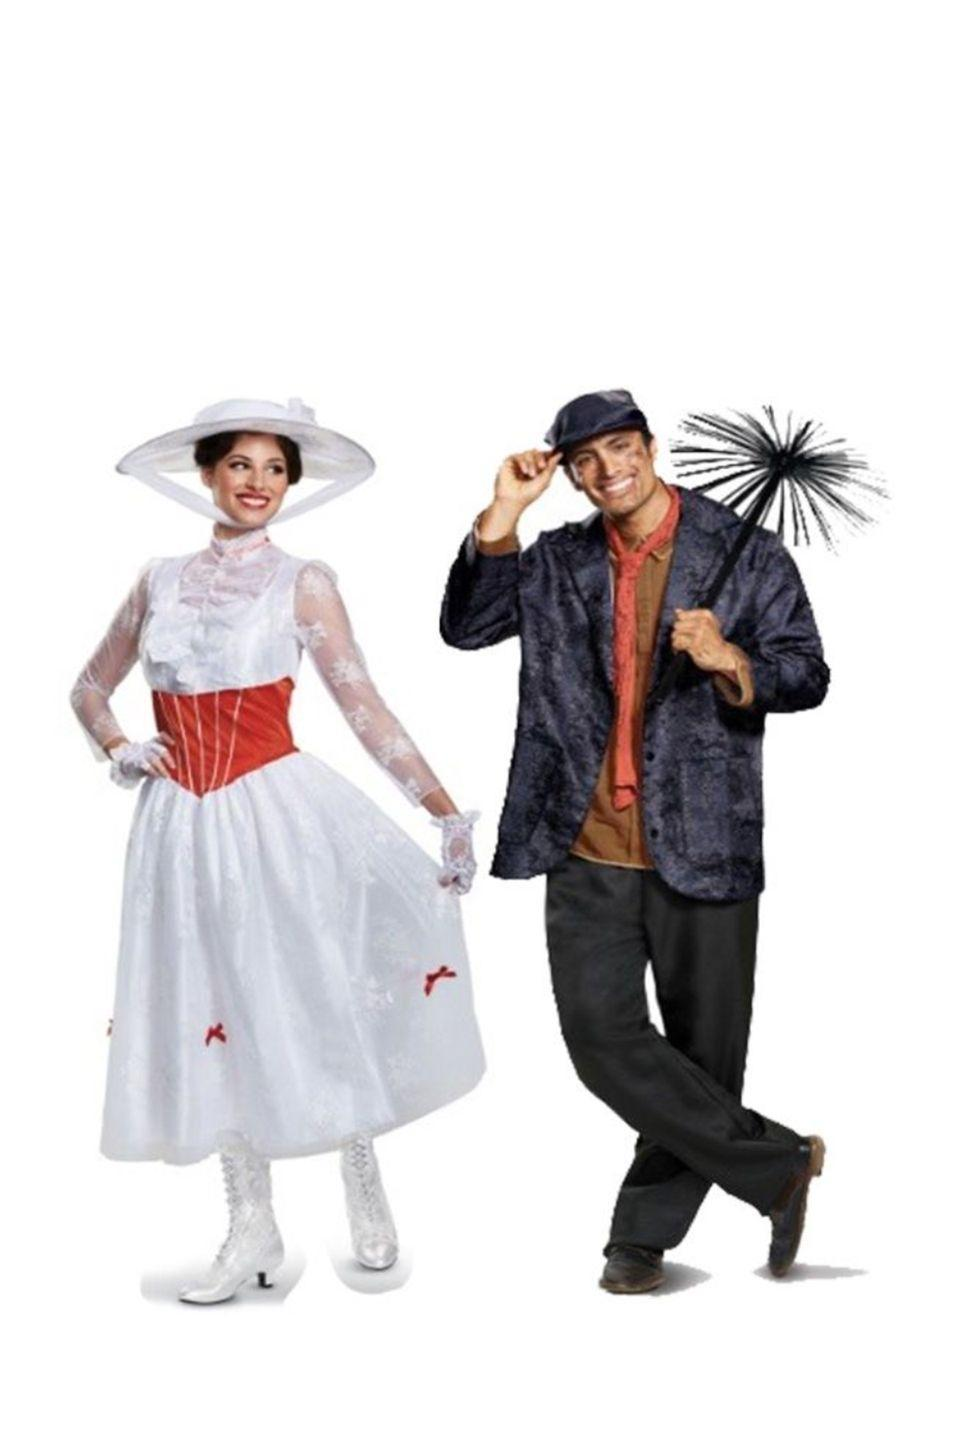 """<p>An underrated combination for sure, this Mary Poppins and Bert costume will make you stand out just because of how original it is.</p><p><a class=""""link rapid-noclick-resp"""" href=""""https://go.redirectingat.com?id=74968X1596630&url=https%3A%2F%2Fwww.halloweencostumes.com%2Fdeluxe-womens-mary-poppins-costume.html&sref=https%3A%2F%2Fwww.womansday.com%2Fstyle%2Fg28691602%2Fdisney-couples-costumes%2F"""" rel=""""nofollow noopener"""" target=""""_blank"""" data-ylk=""""slk:SHOP MARRY POPPINS COSTUME"""">SHOP MARRY POPPINS COSTUME</a></p><p><a class=""""link rapid-noclick-resp"""" href=""""https://go.redirectingat.com?id=74968X1596630&url=https%3A%2F%2Fwww.halloweencostumes.com%2Fchimney-sweep.html&sref=https%3A%2F%2Fwww.womansday.com%2Fstyle%2Fg28691602%2Fdisney-couples-costumes%2F"""" rel=""""nofollow noopener"""" target=""""_blank"""" data-ylk=""""slk:SHOP BERT COSTUME"""">SHOP BERT COSTUME</a> </p>"""